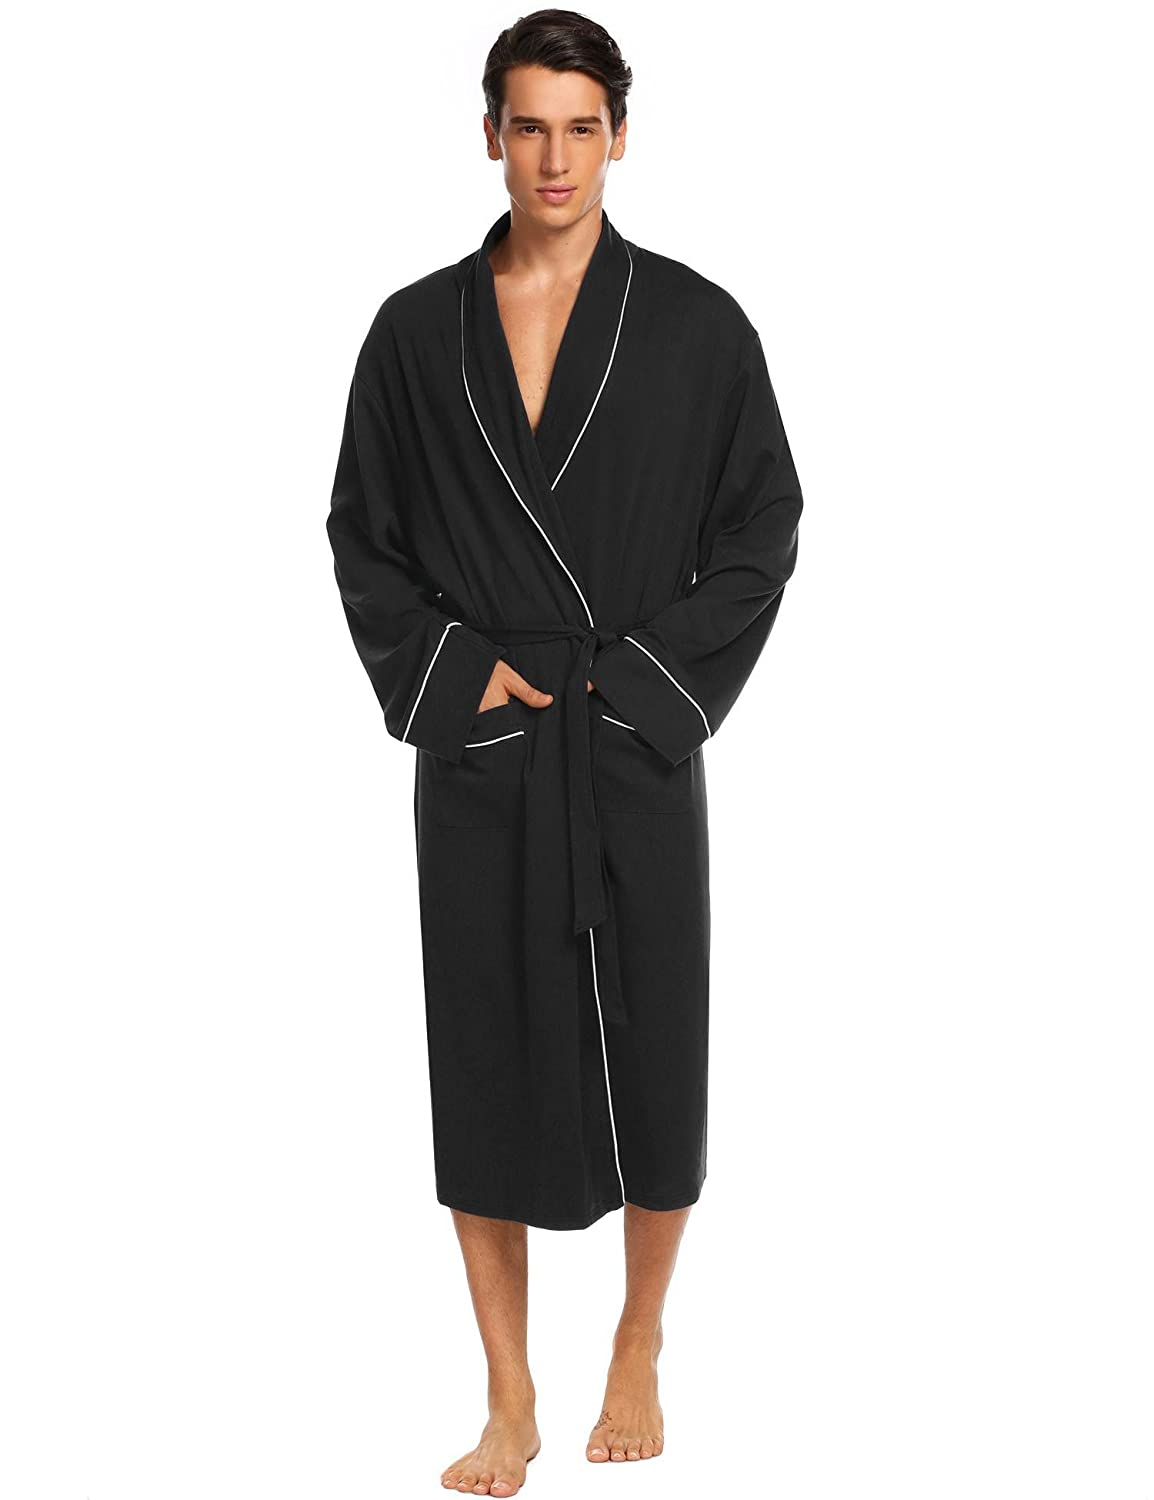 810922fb333  Classic Design This bathrobe features a woven kimono. 2 front patch  pockets are perfect for holding your phone. Shawl collar lightweight robe  with ...